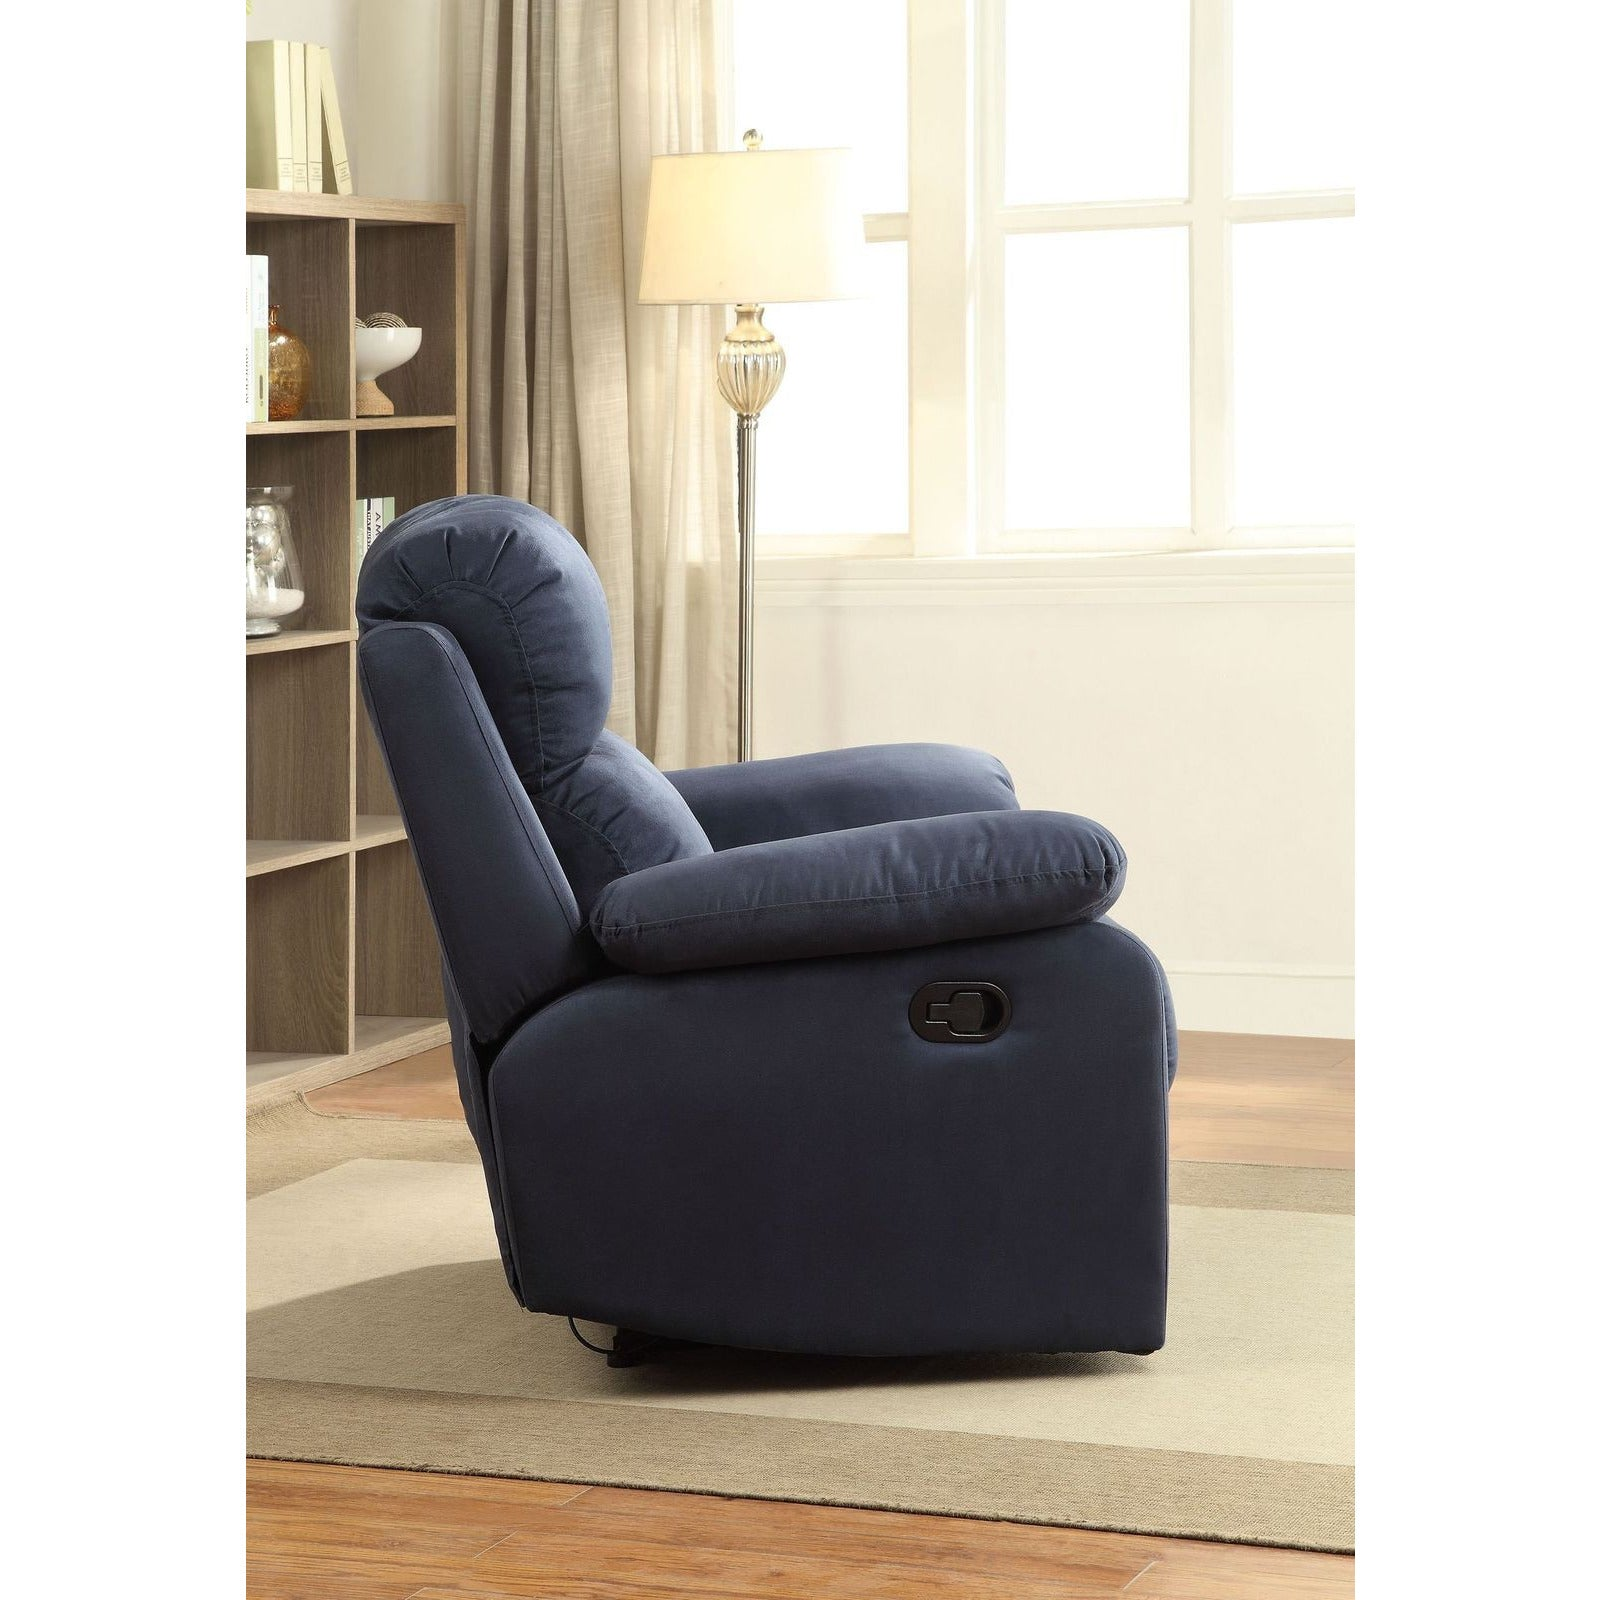 Parklon Recliner (Motion) in Blue Microfiber BH59476